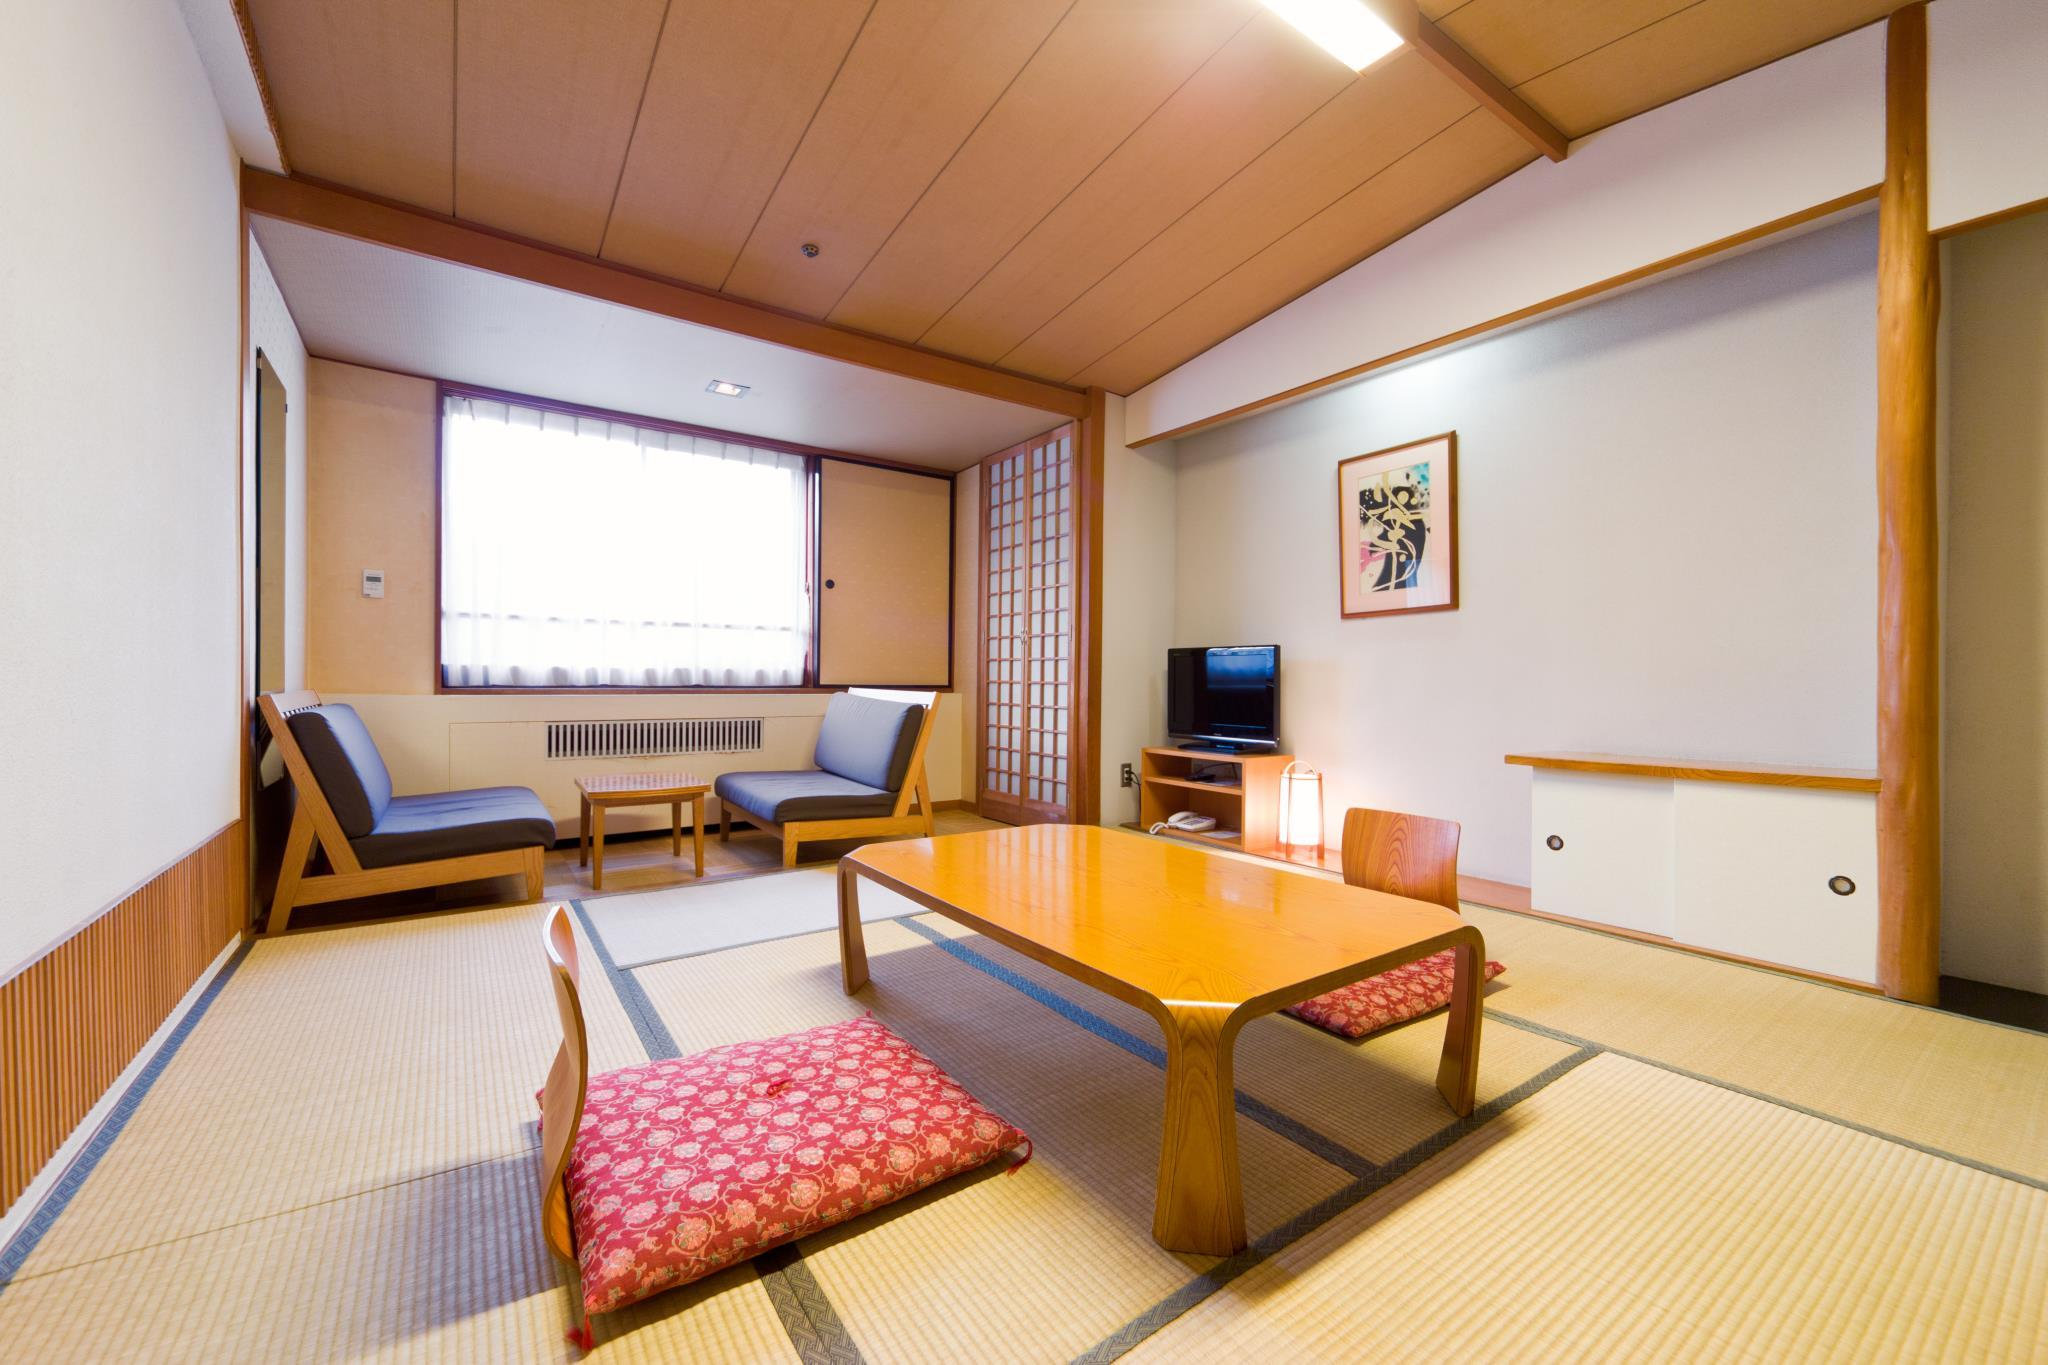 West Building Standard Japanese Style Room A for 4 People